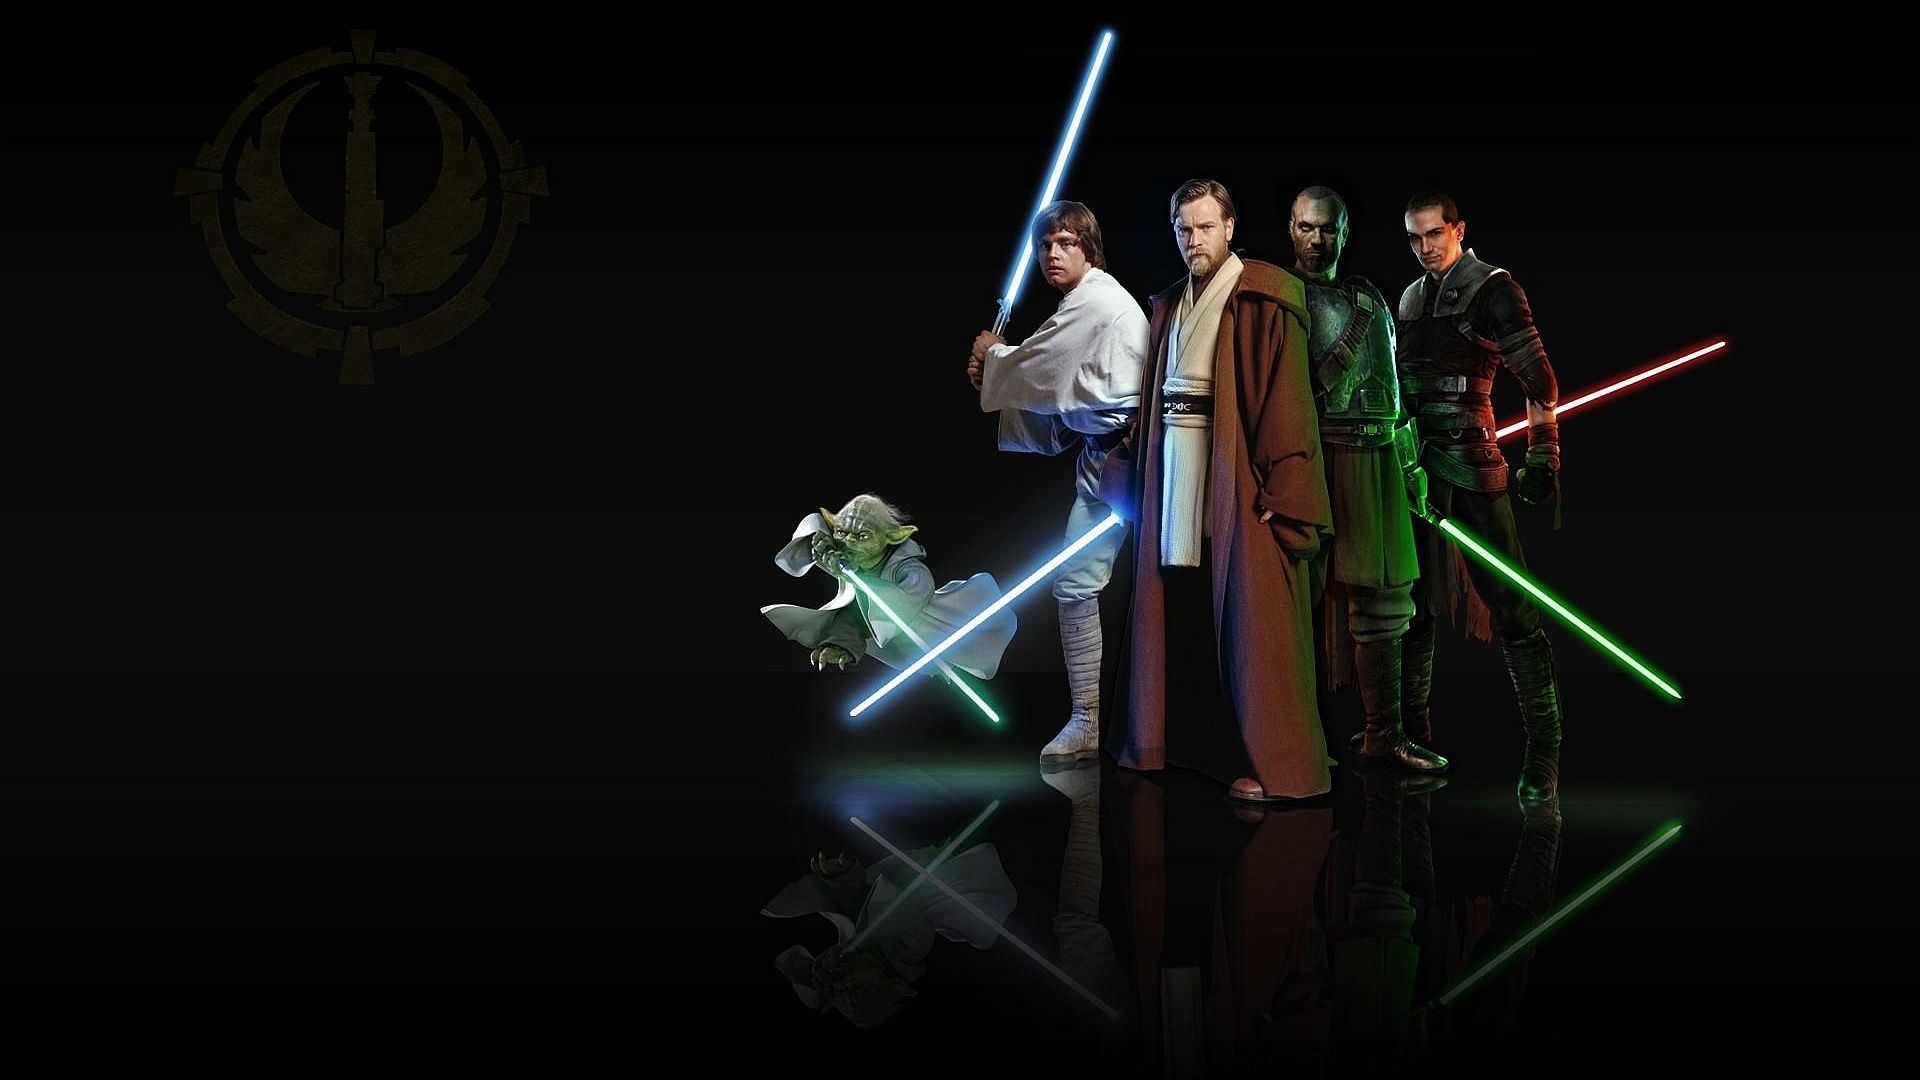 Star Wars Jedis Wallpaper For Free